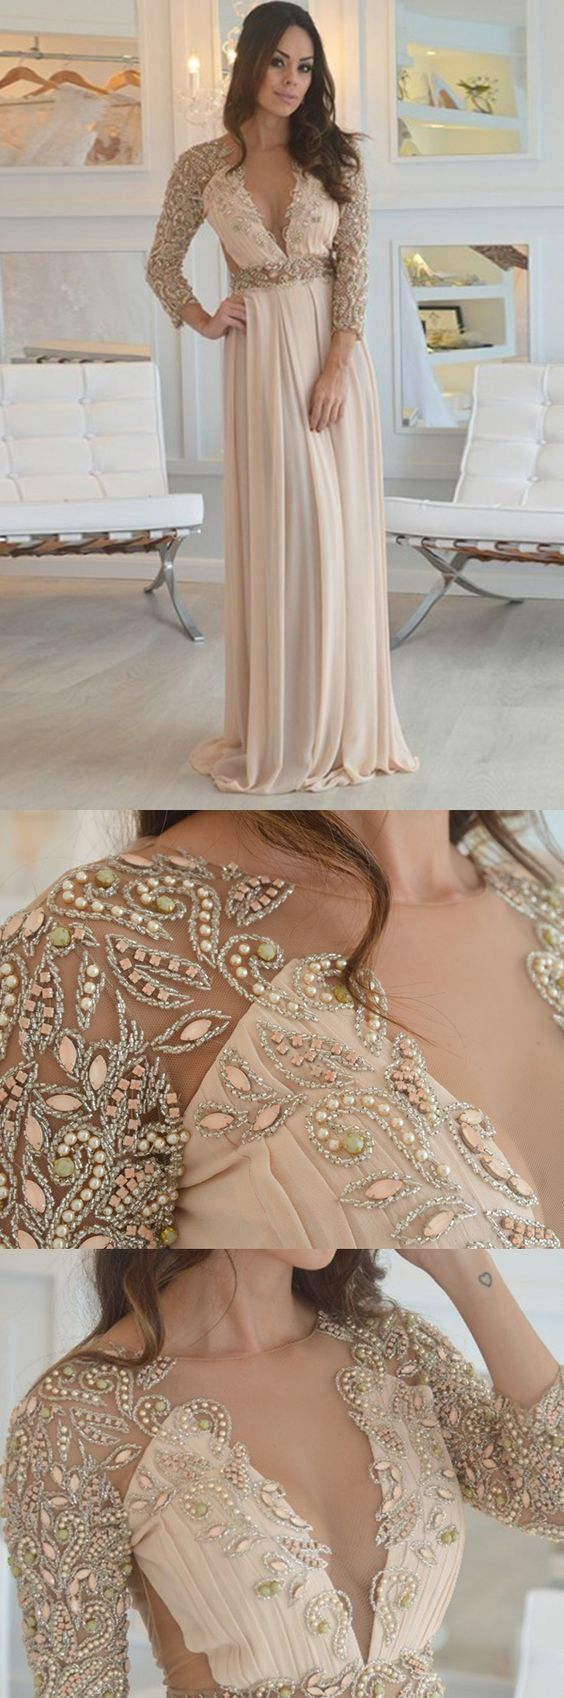 A-Line Round Neck Open Back Champagne Chiffon Prom Dress with Beading Pearls , D0247